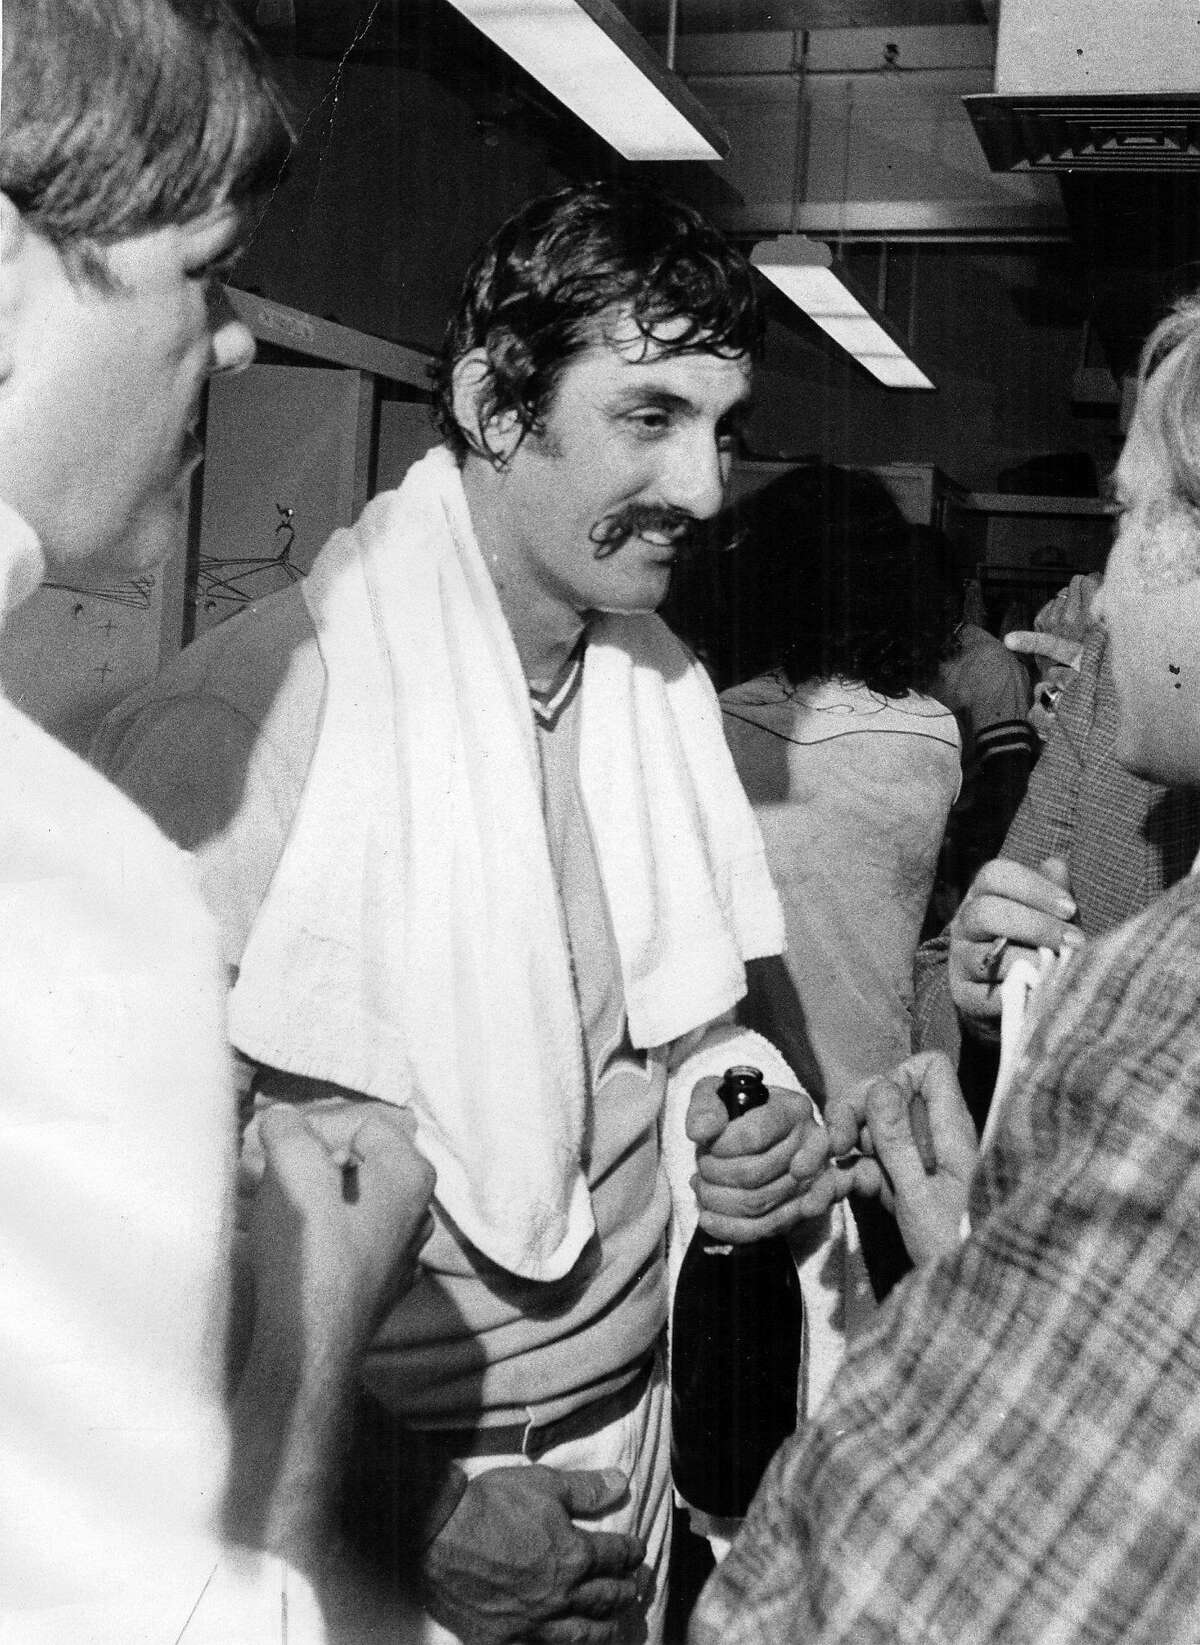 Rollie Fingers, after the World Series in 1974.